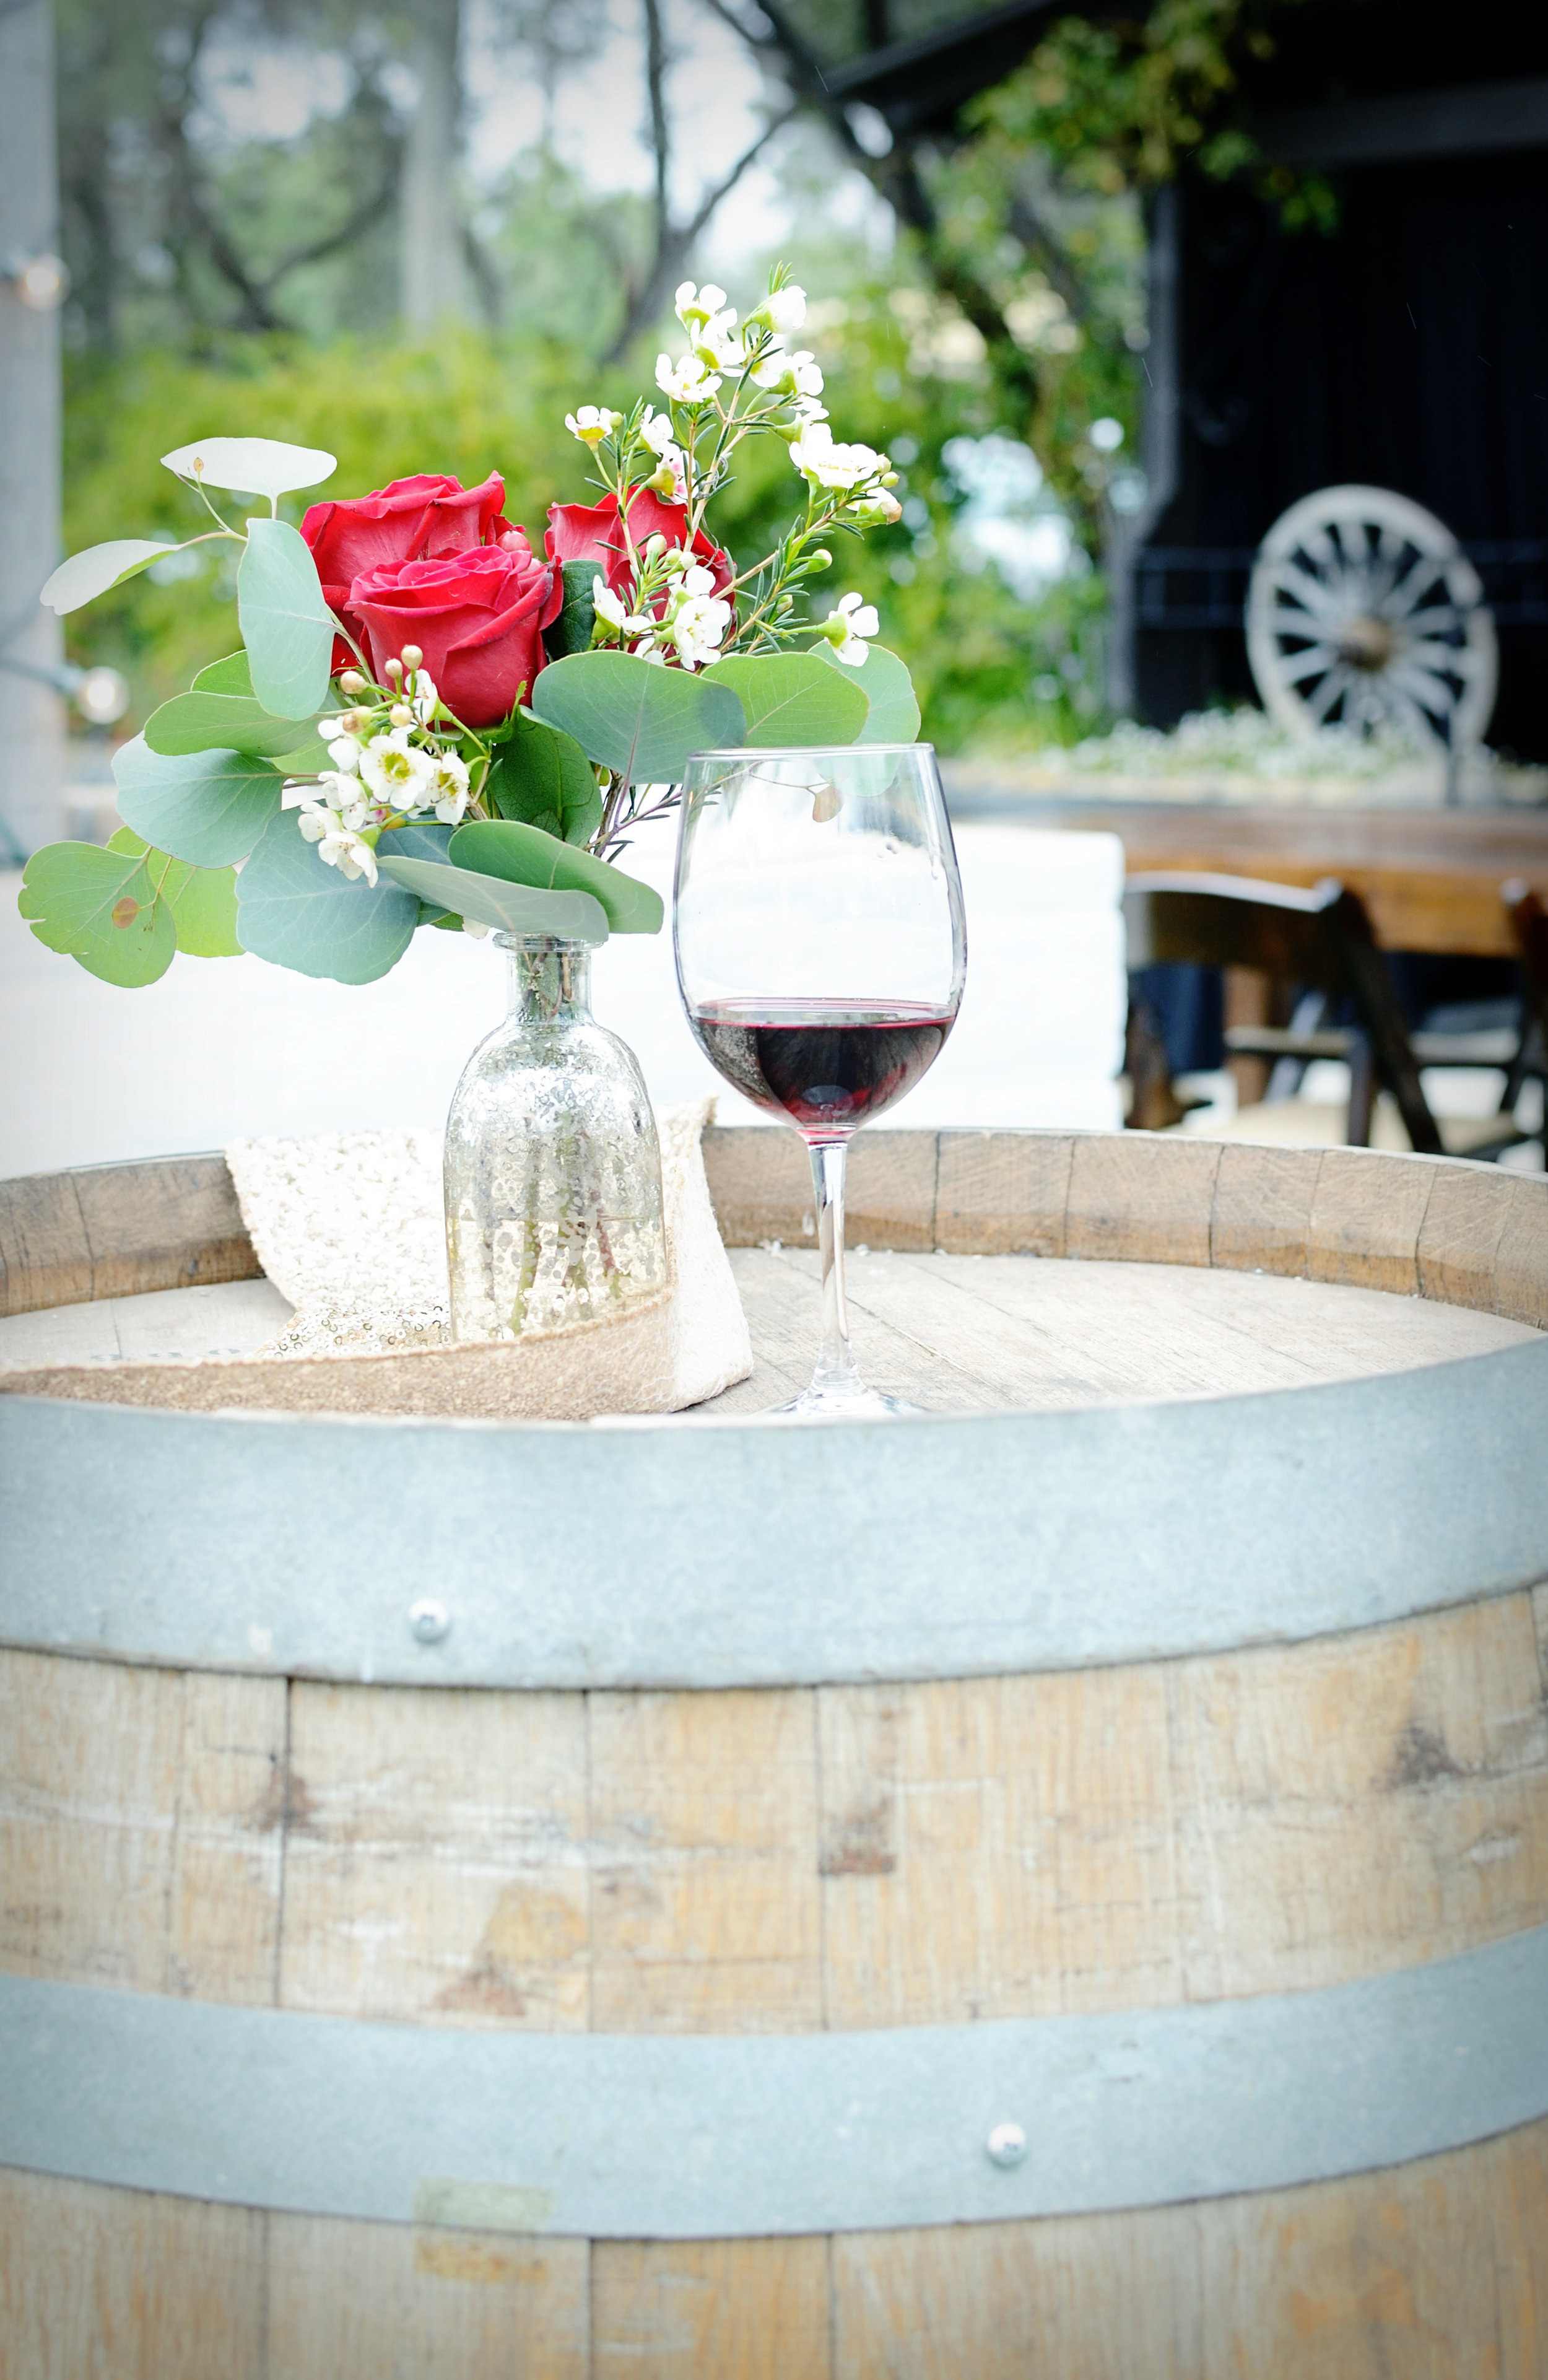 Lifestyle winery 9553 by maria pablo.jpg